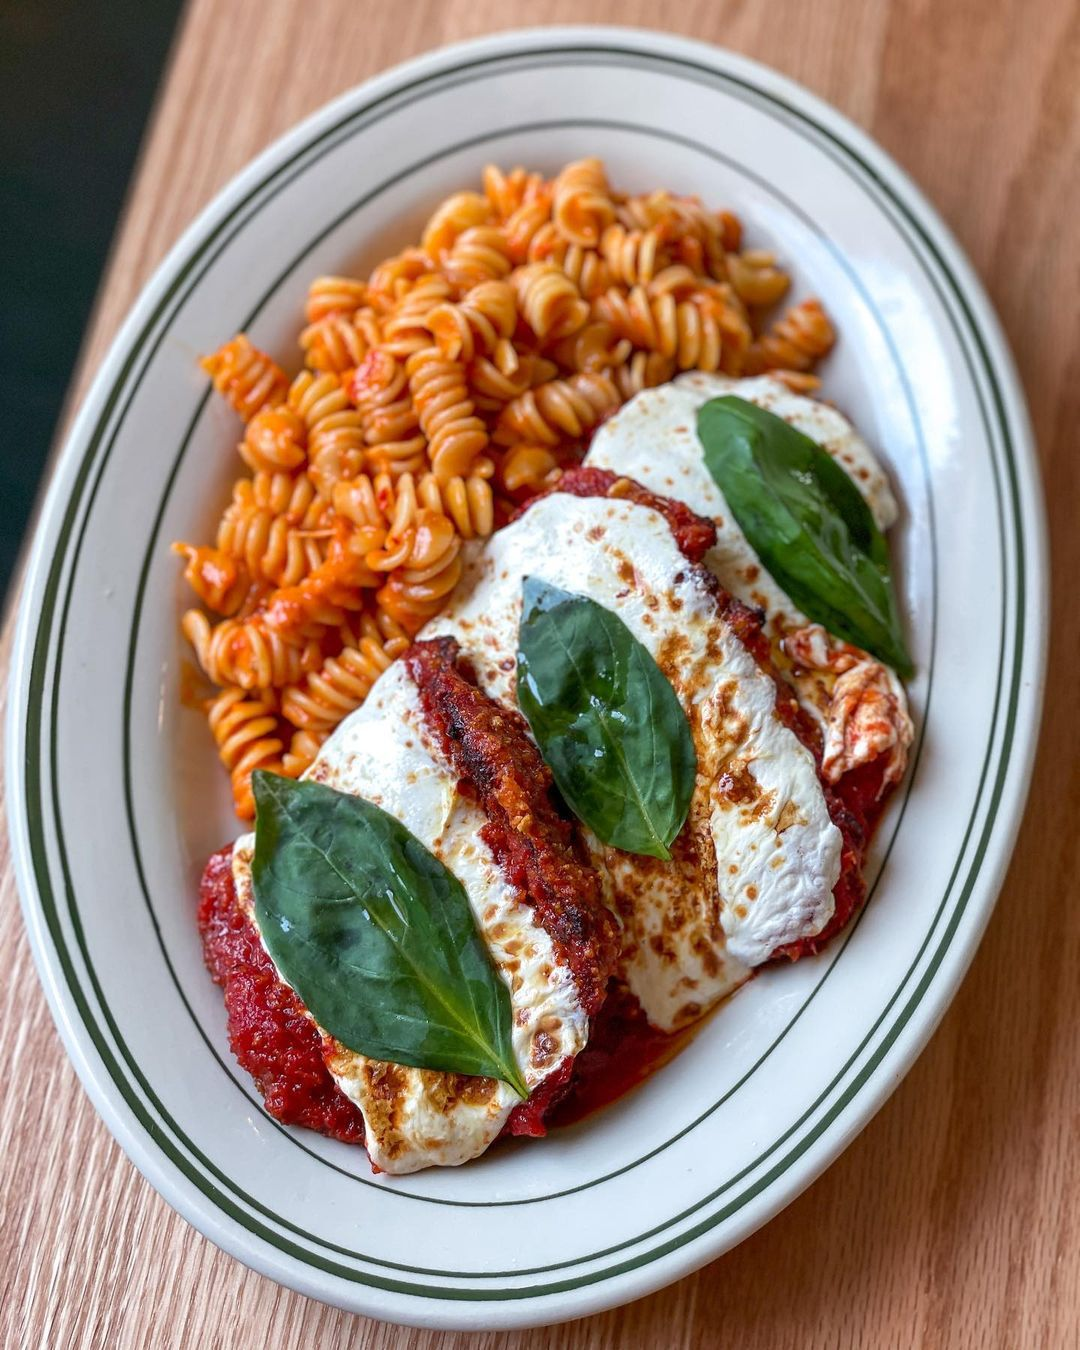 Overhead view of chicken parm on a white plate with a side of rotini. The plate is on a light wooden surface.